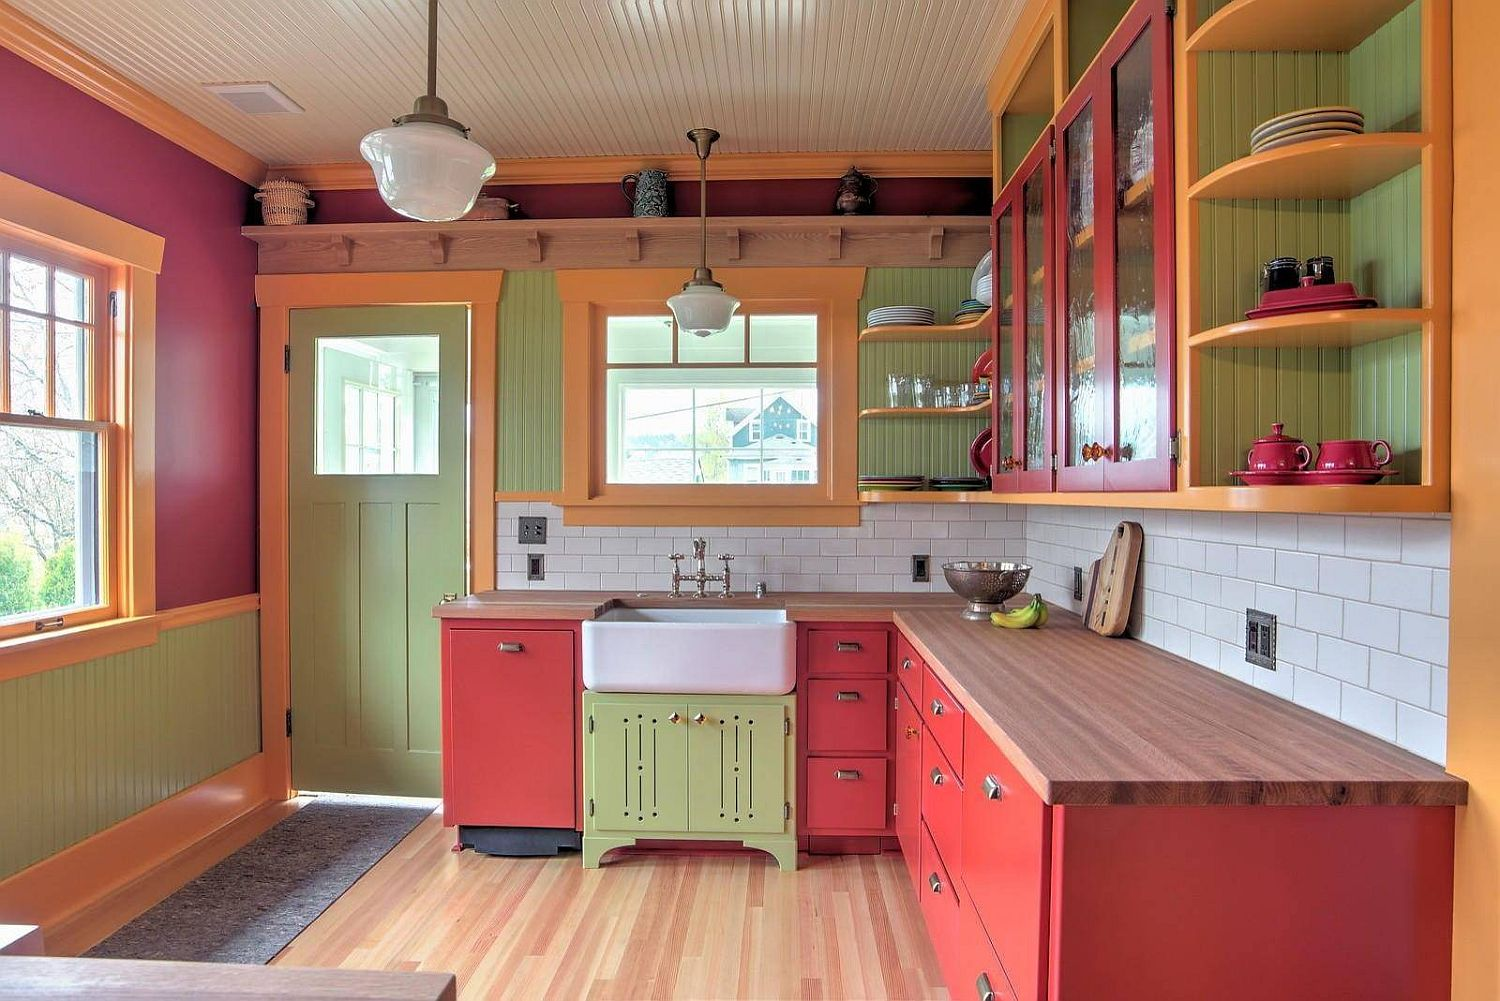 Innovative and eclectic kitchen in red, green and orange